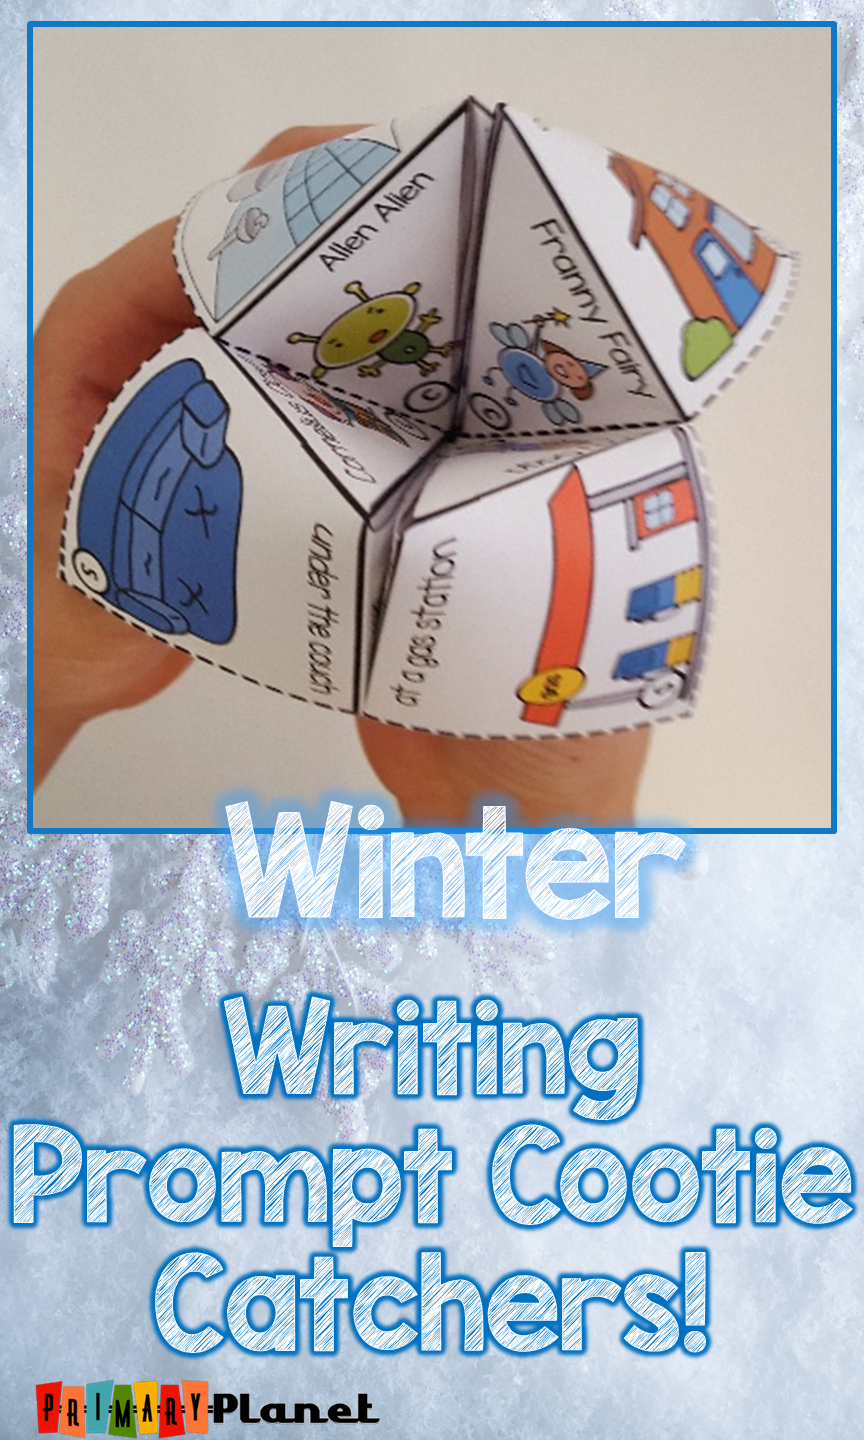 Looking for winter writing activities?  These winter writing prompt cootie catcher ideas will get your kiddos writing this winter!  Elementary students love these fun fortune teller prompts.